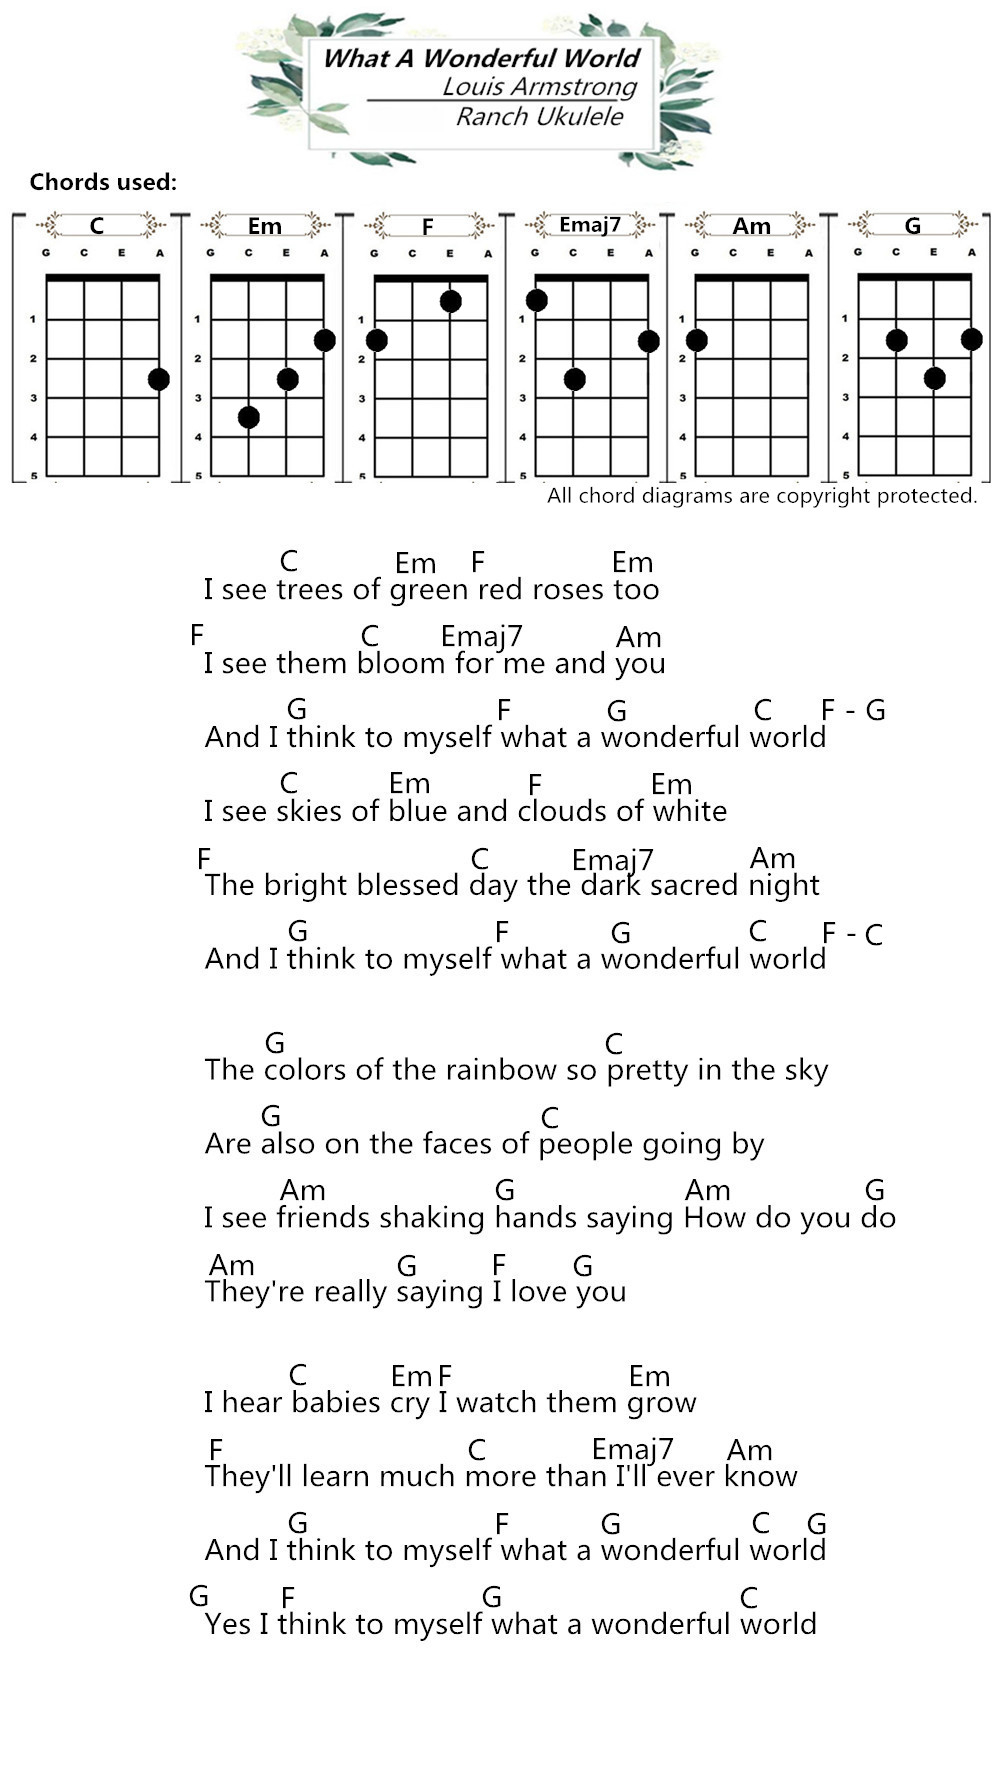 You And I Ukulele Chords Ukulele Chords What A Wonderful World Louis Armstrong Ranch